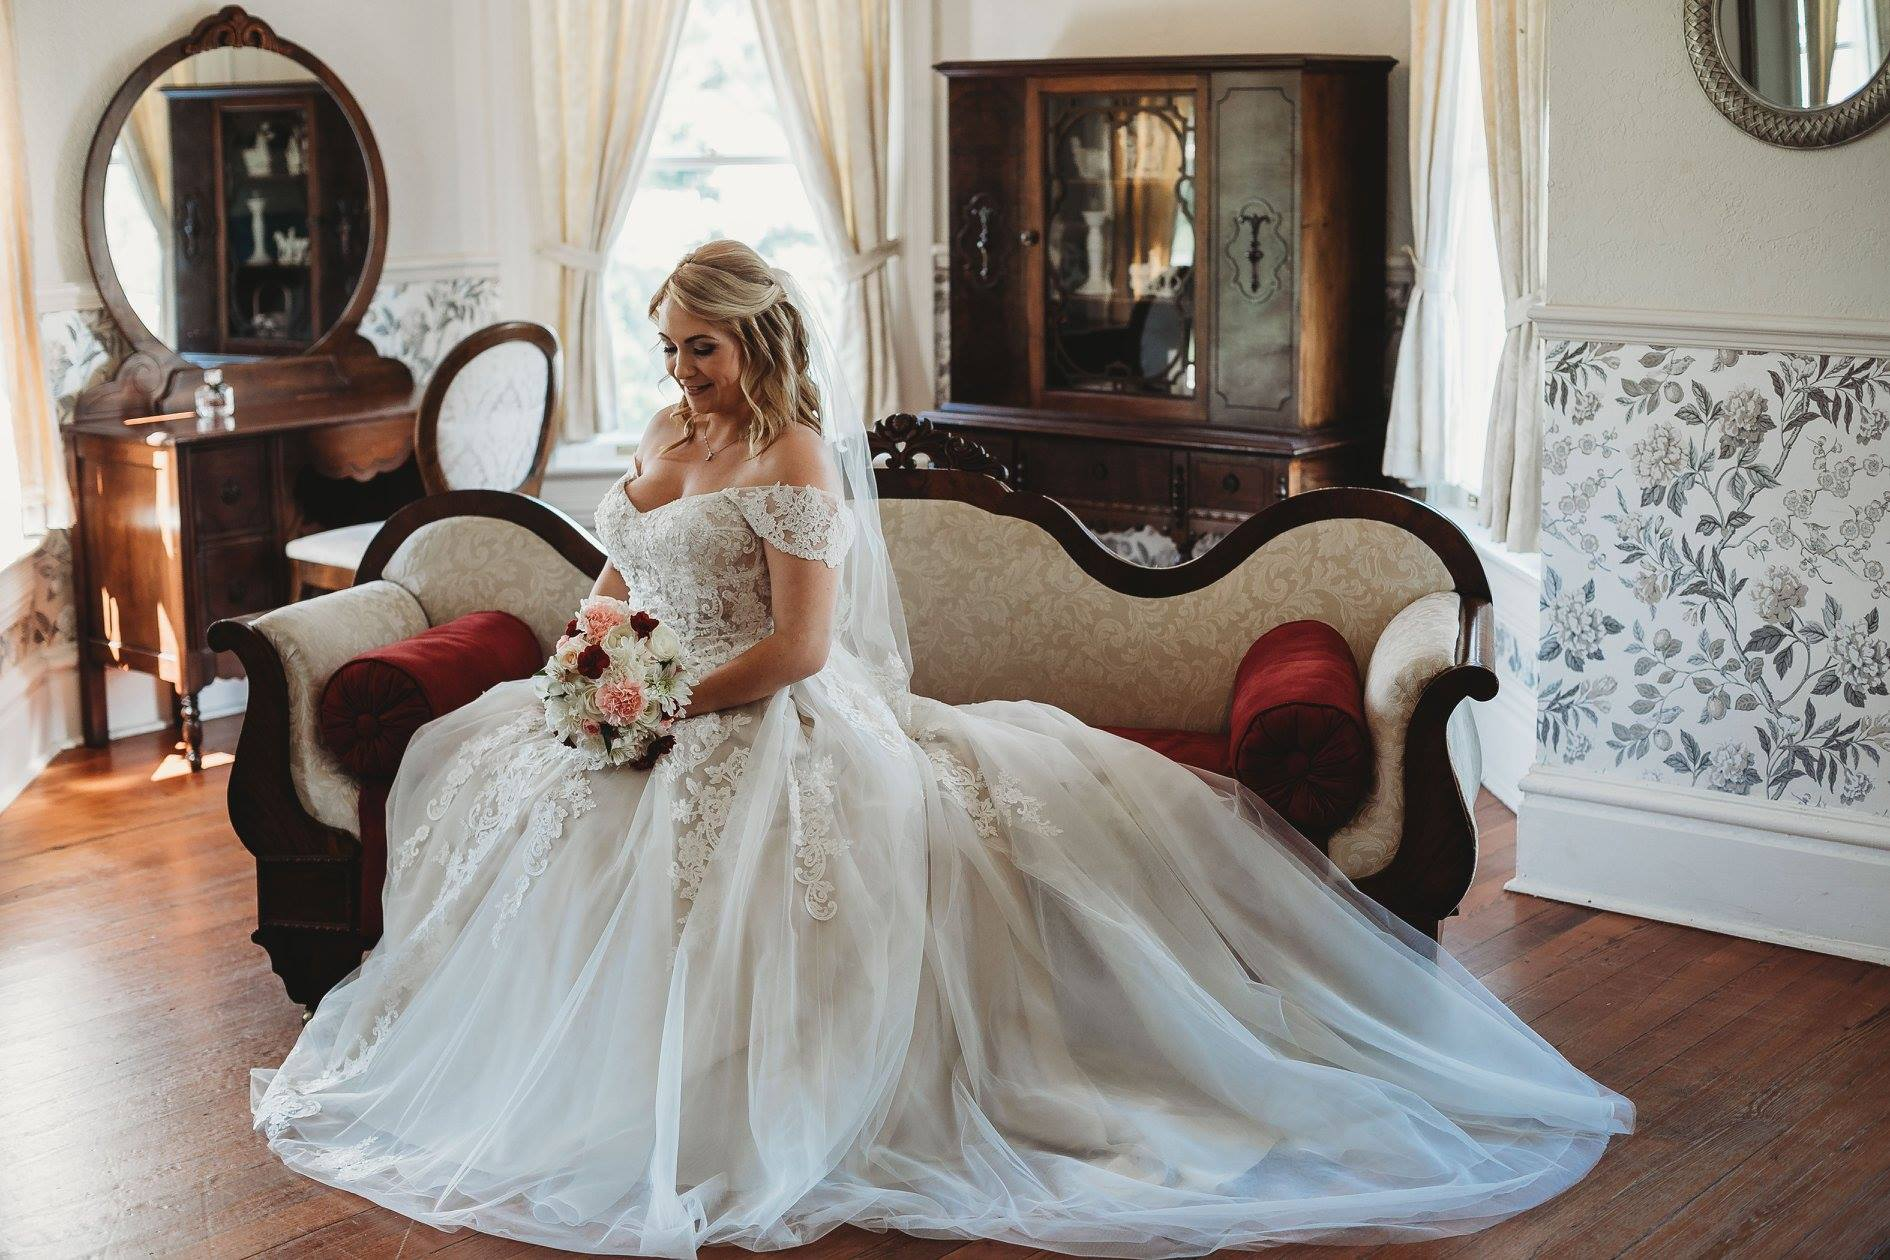 bride posing on settee in bridal suite